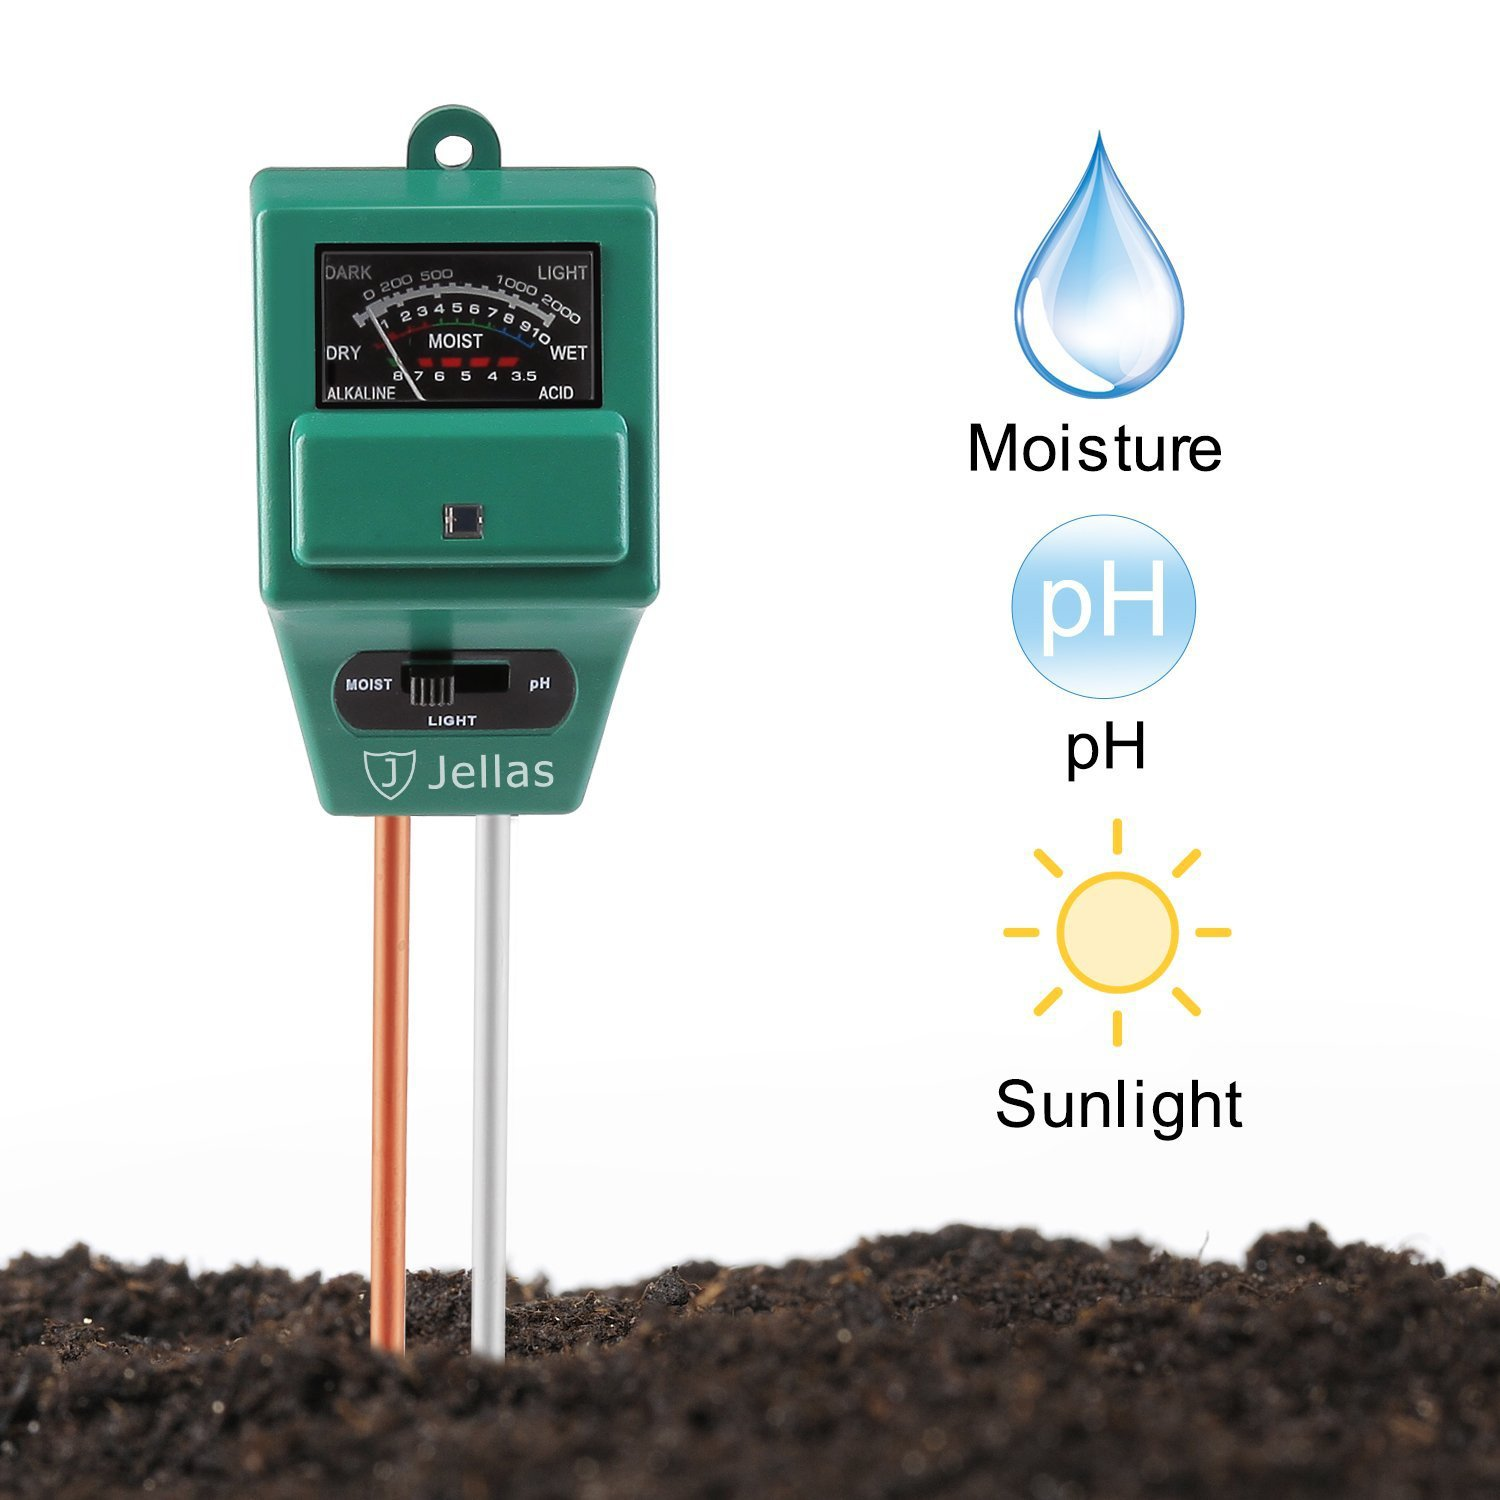 Jellas Soil pH Meter, 3-in-1 Moisture Sensor Meter/Sunlight/pH Soil Test Kits test function for Home and Garden, Plants, Farm, Indoor/Outdoor Use by Jellas